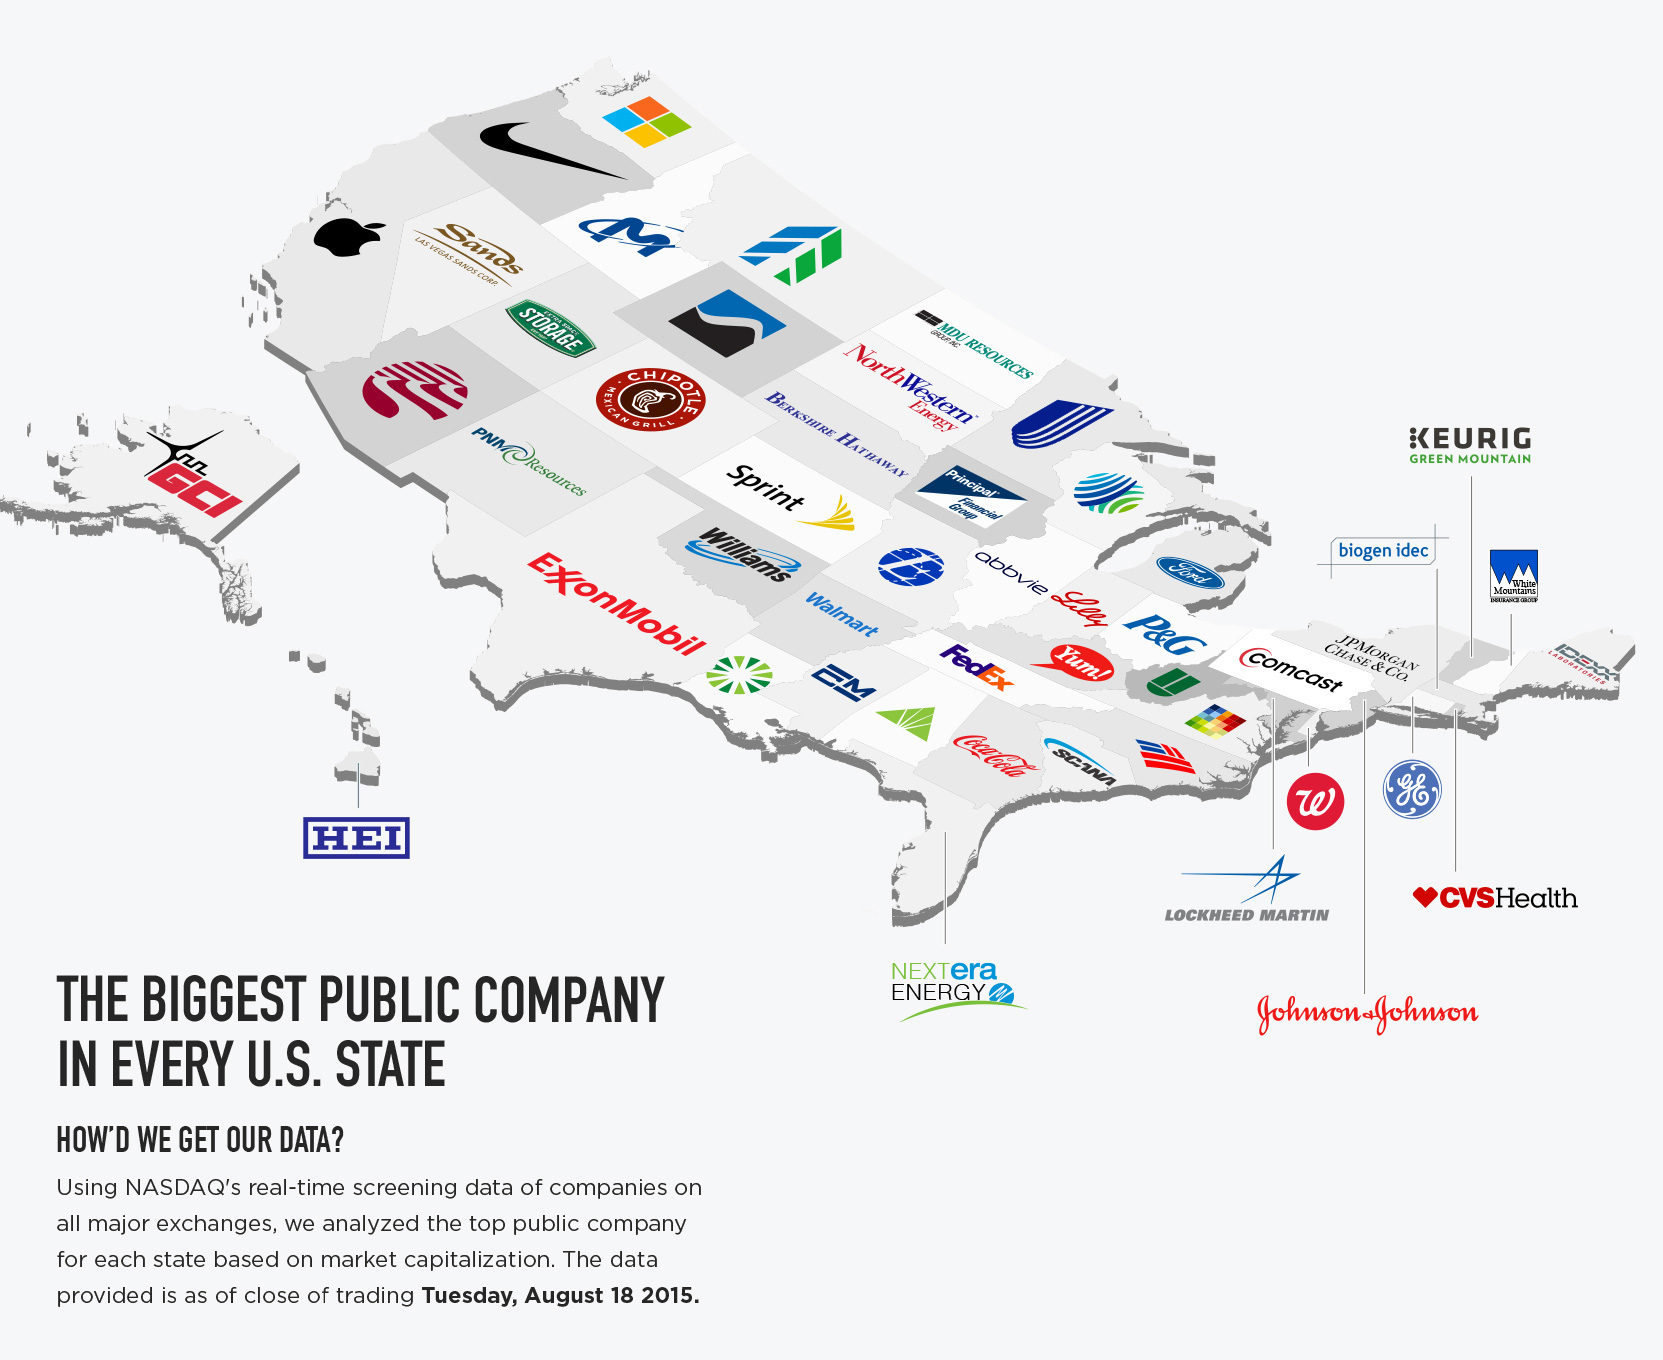 The Biggest Public Company in Every U.S. State